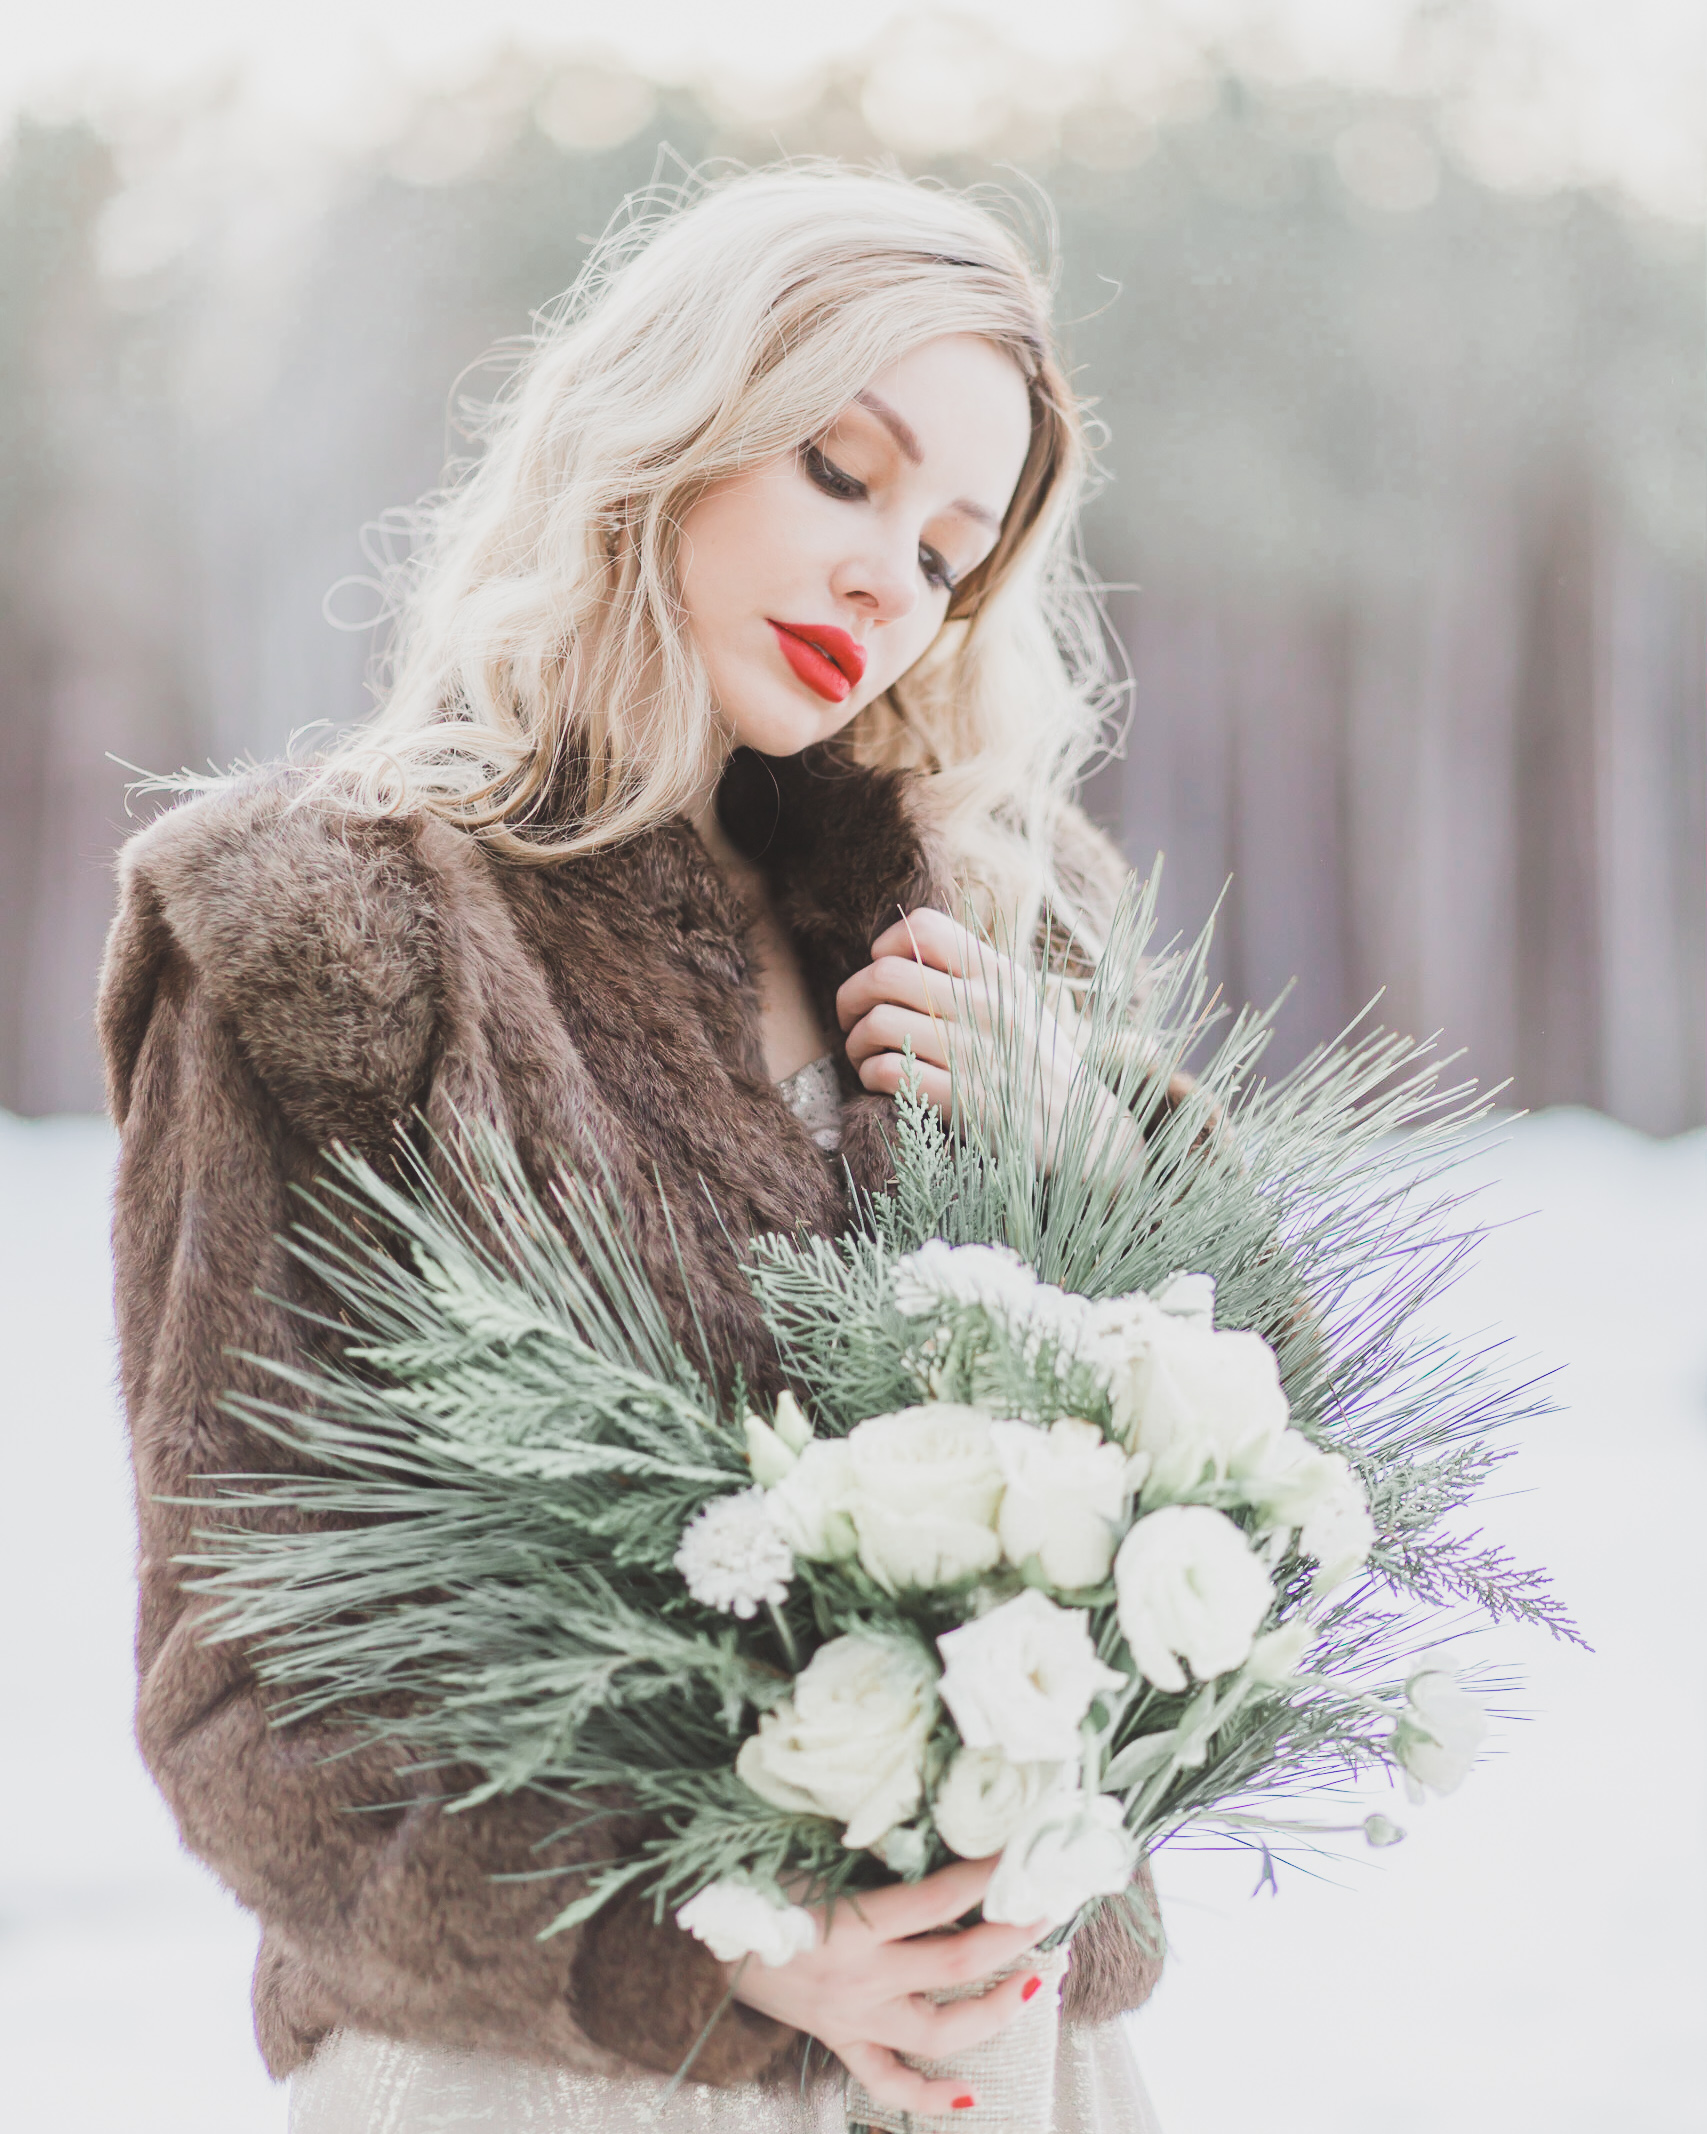 Winter Wedding Styled Shoot201812126090-2.jpg